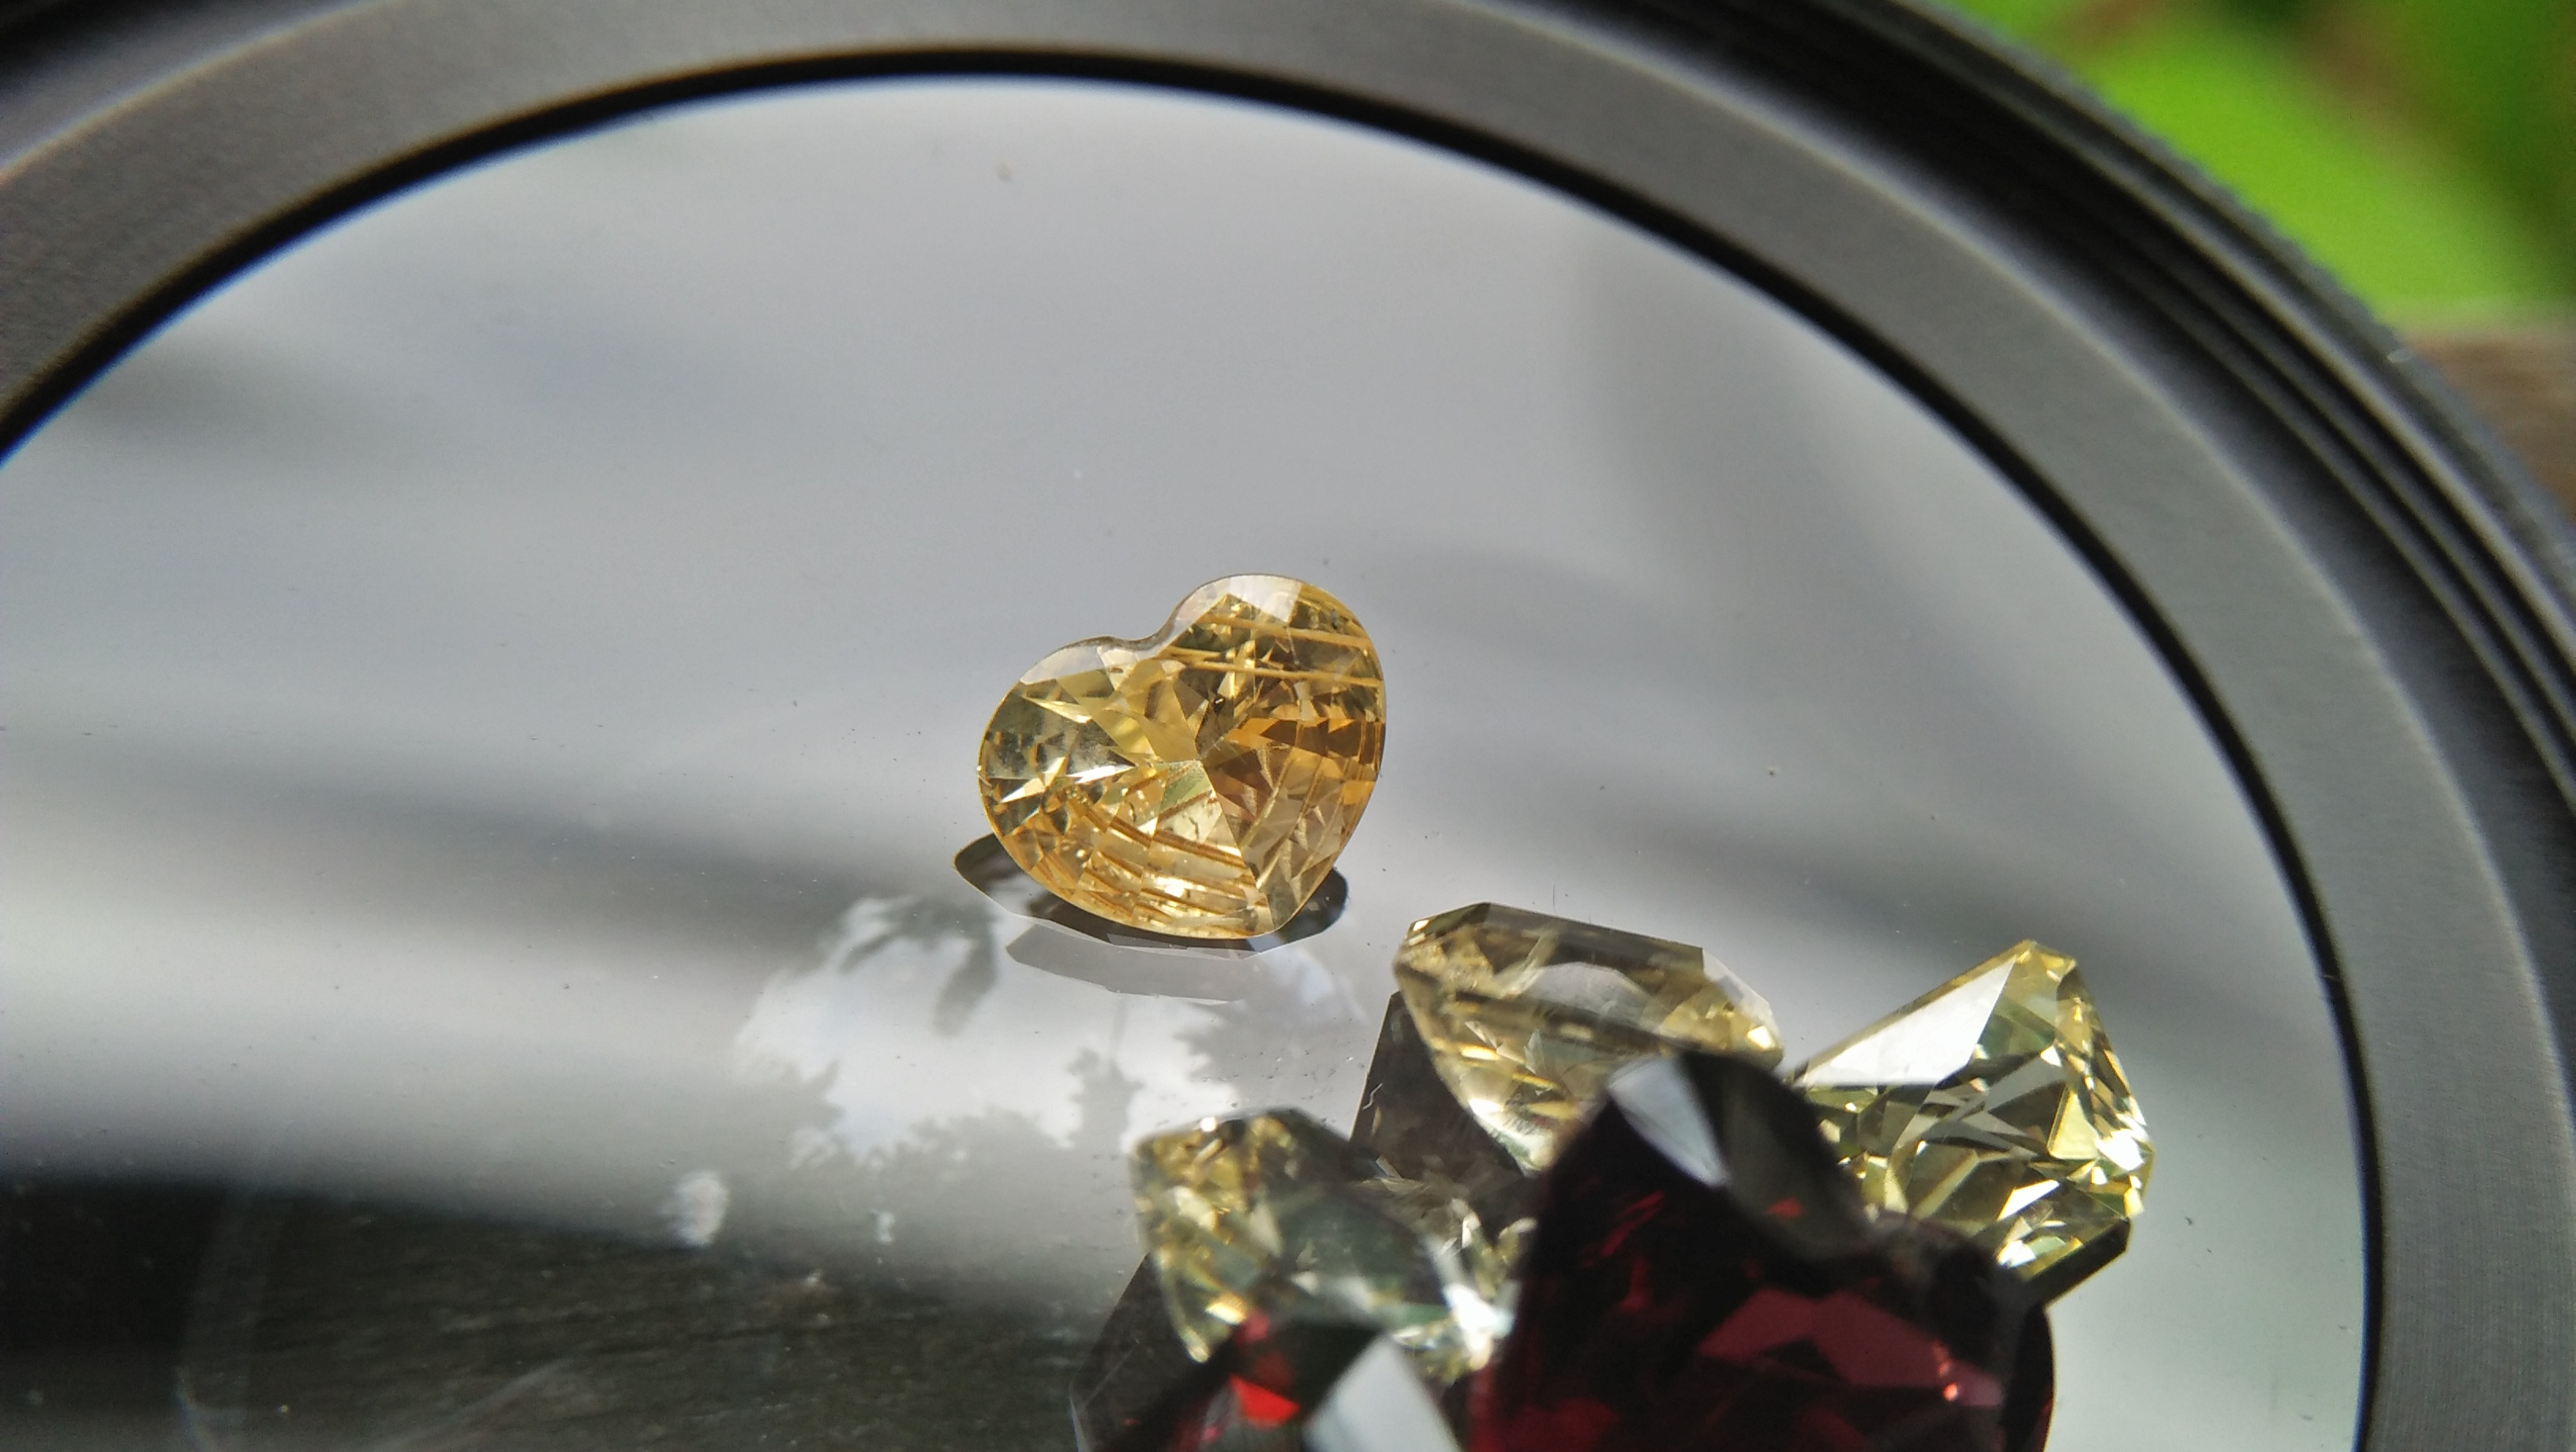 Ceylon Natural Yellow Sapphire Heart Weight : 1.05cts Dimension : 6.2mm x 7.5mm x 3.2mm Shape : Heart Colour : Yellow Treatments : Unheated/ Natural